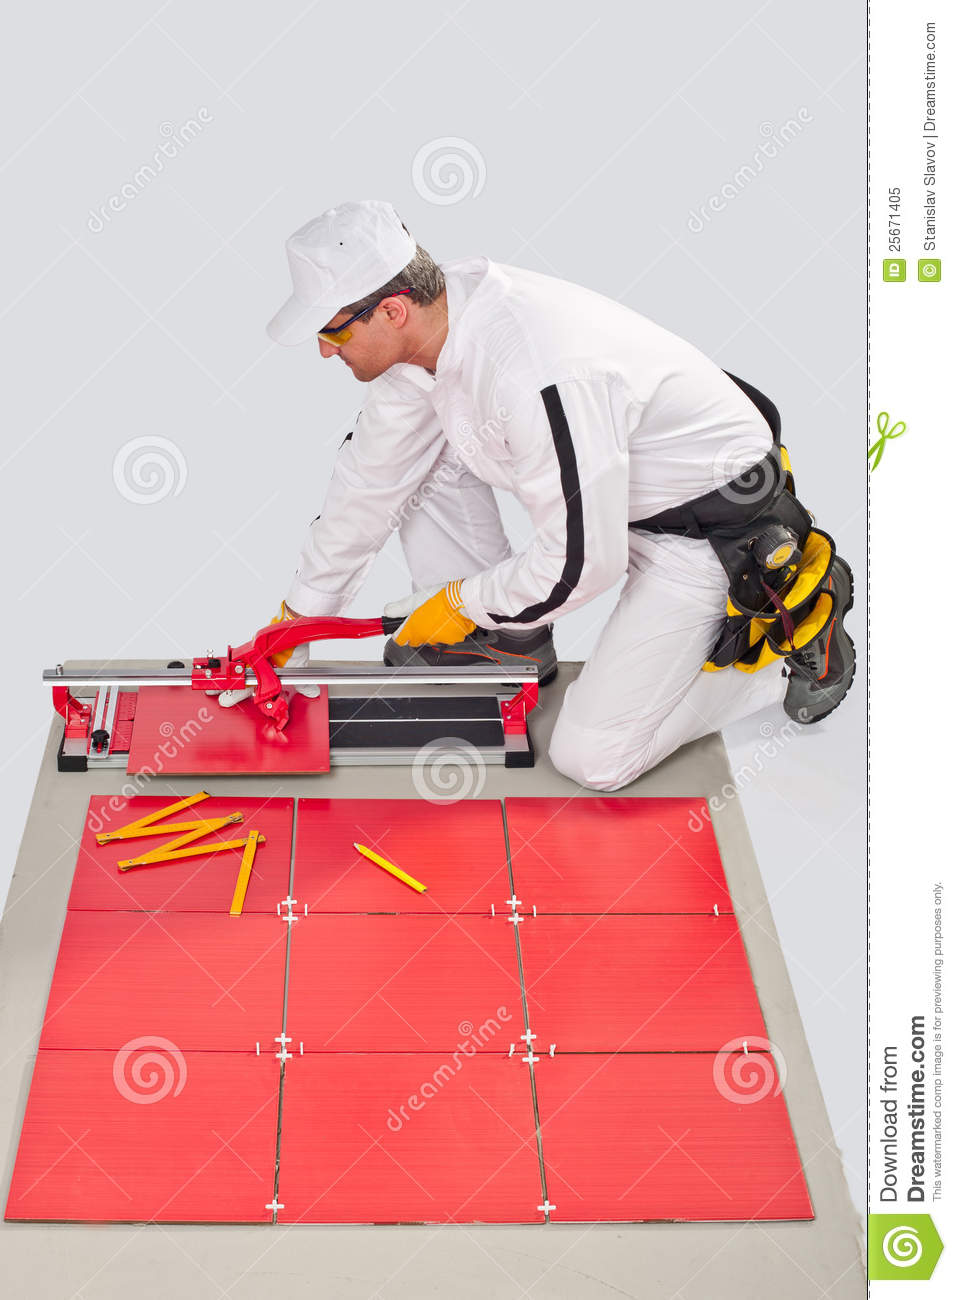 Worker cut ceramic tile machine stock image image of applicator worker cut ceramic tile machine dailygadgetfo Image collections